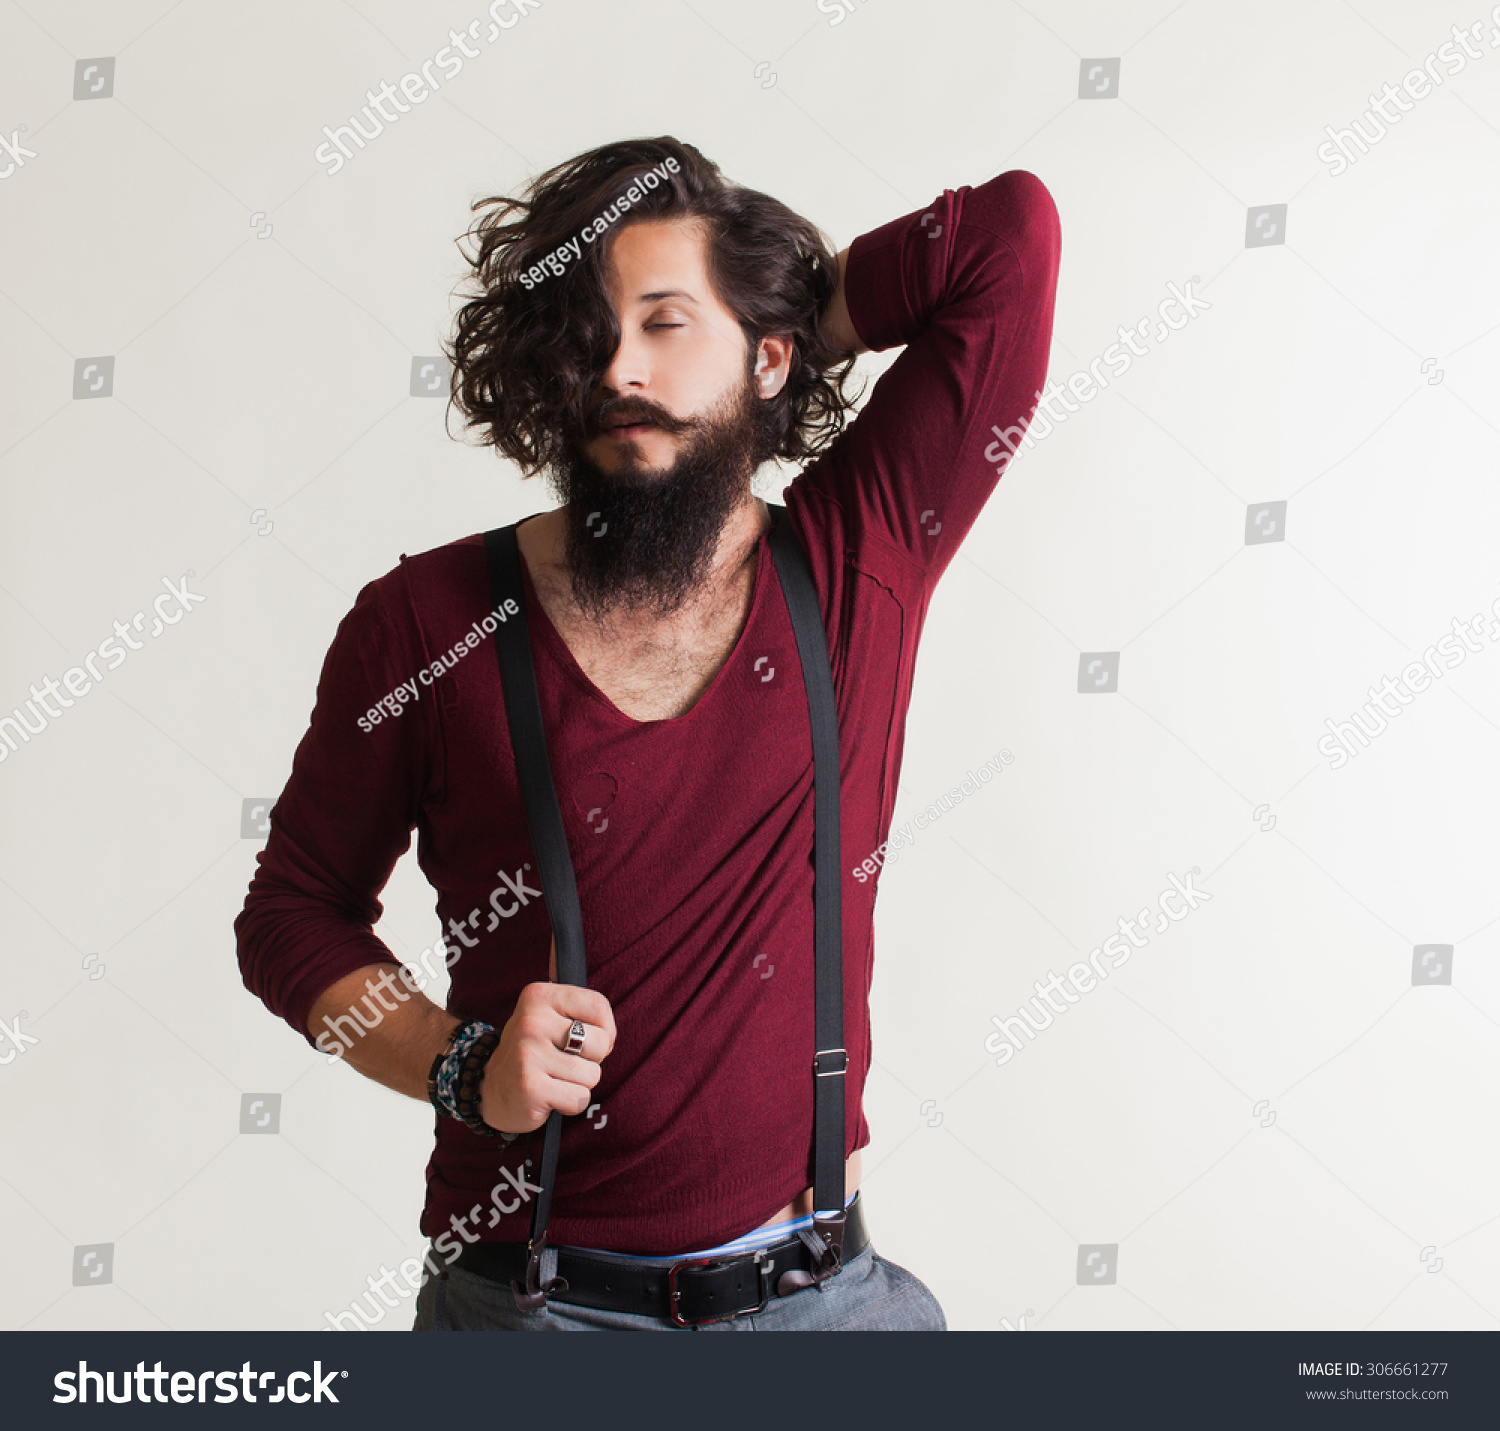 Young Guy Mustache Beard Red Sweater Stock Photo 306661277 ...